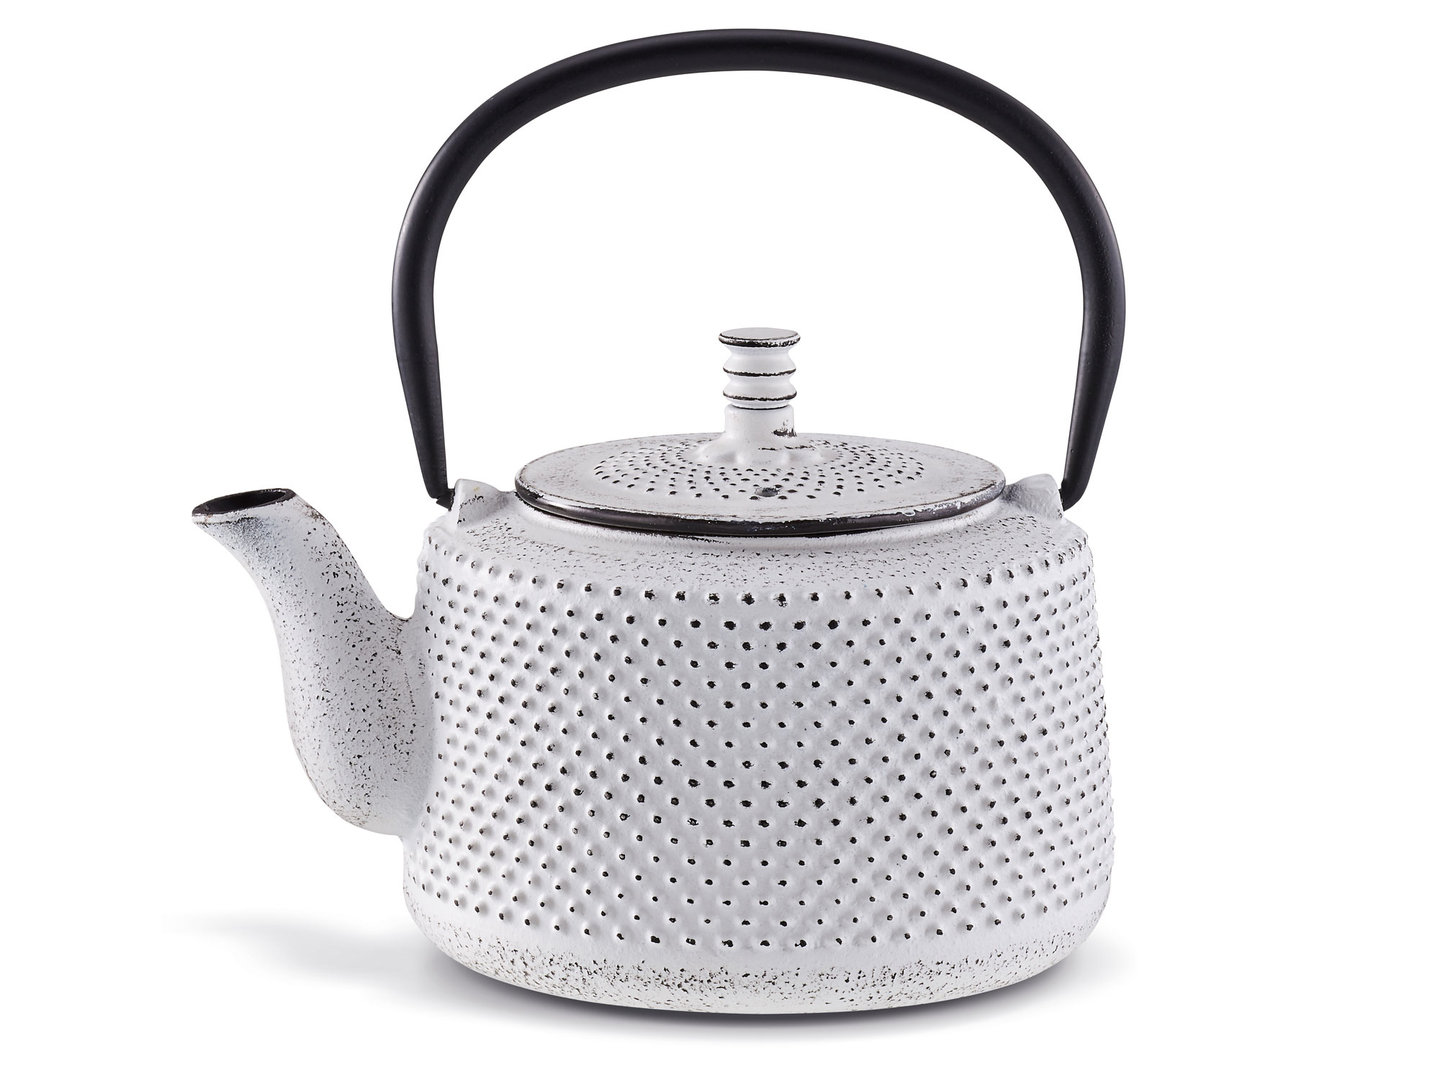 BEKA cast iron teapot JITO white 0.8 L with tea strainer